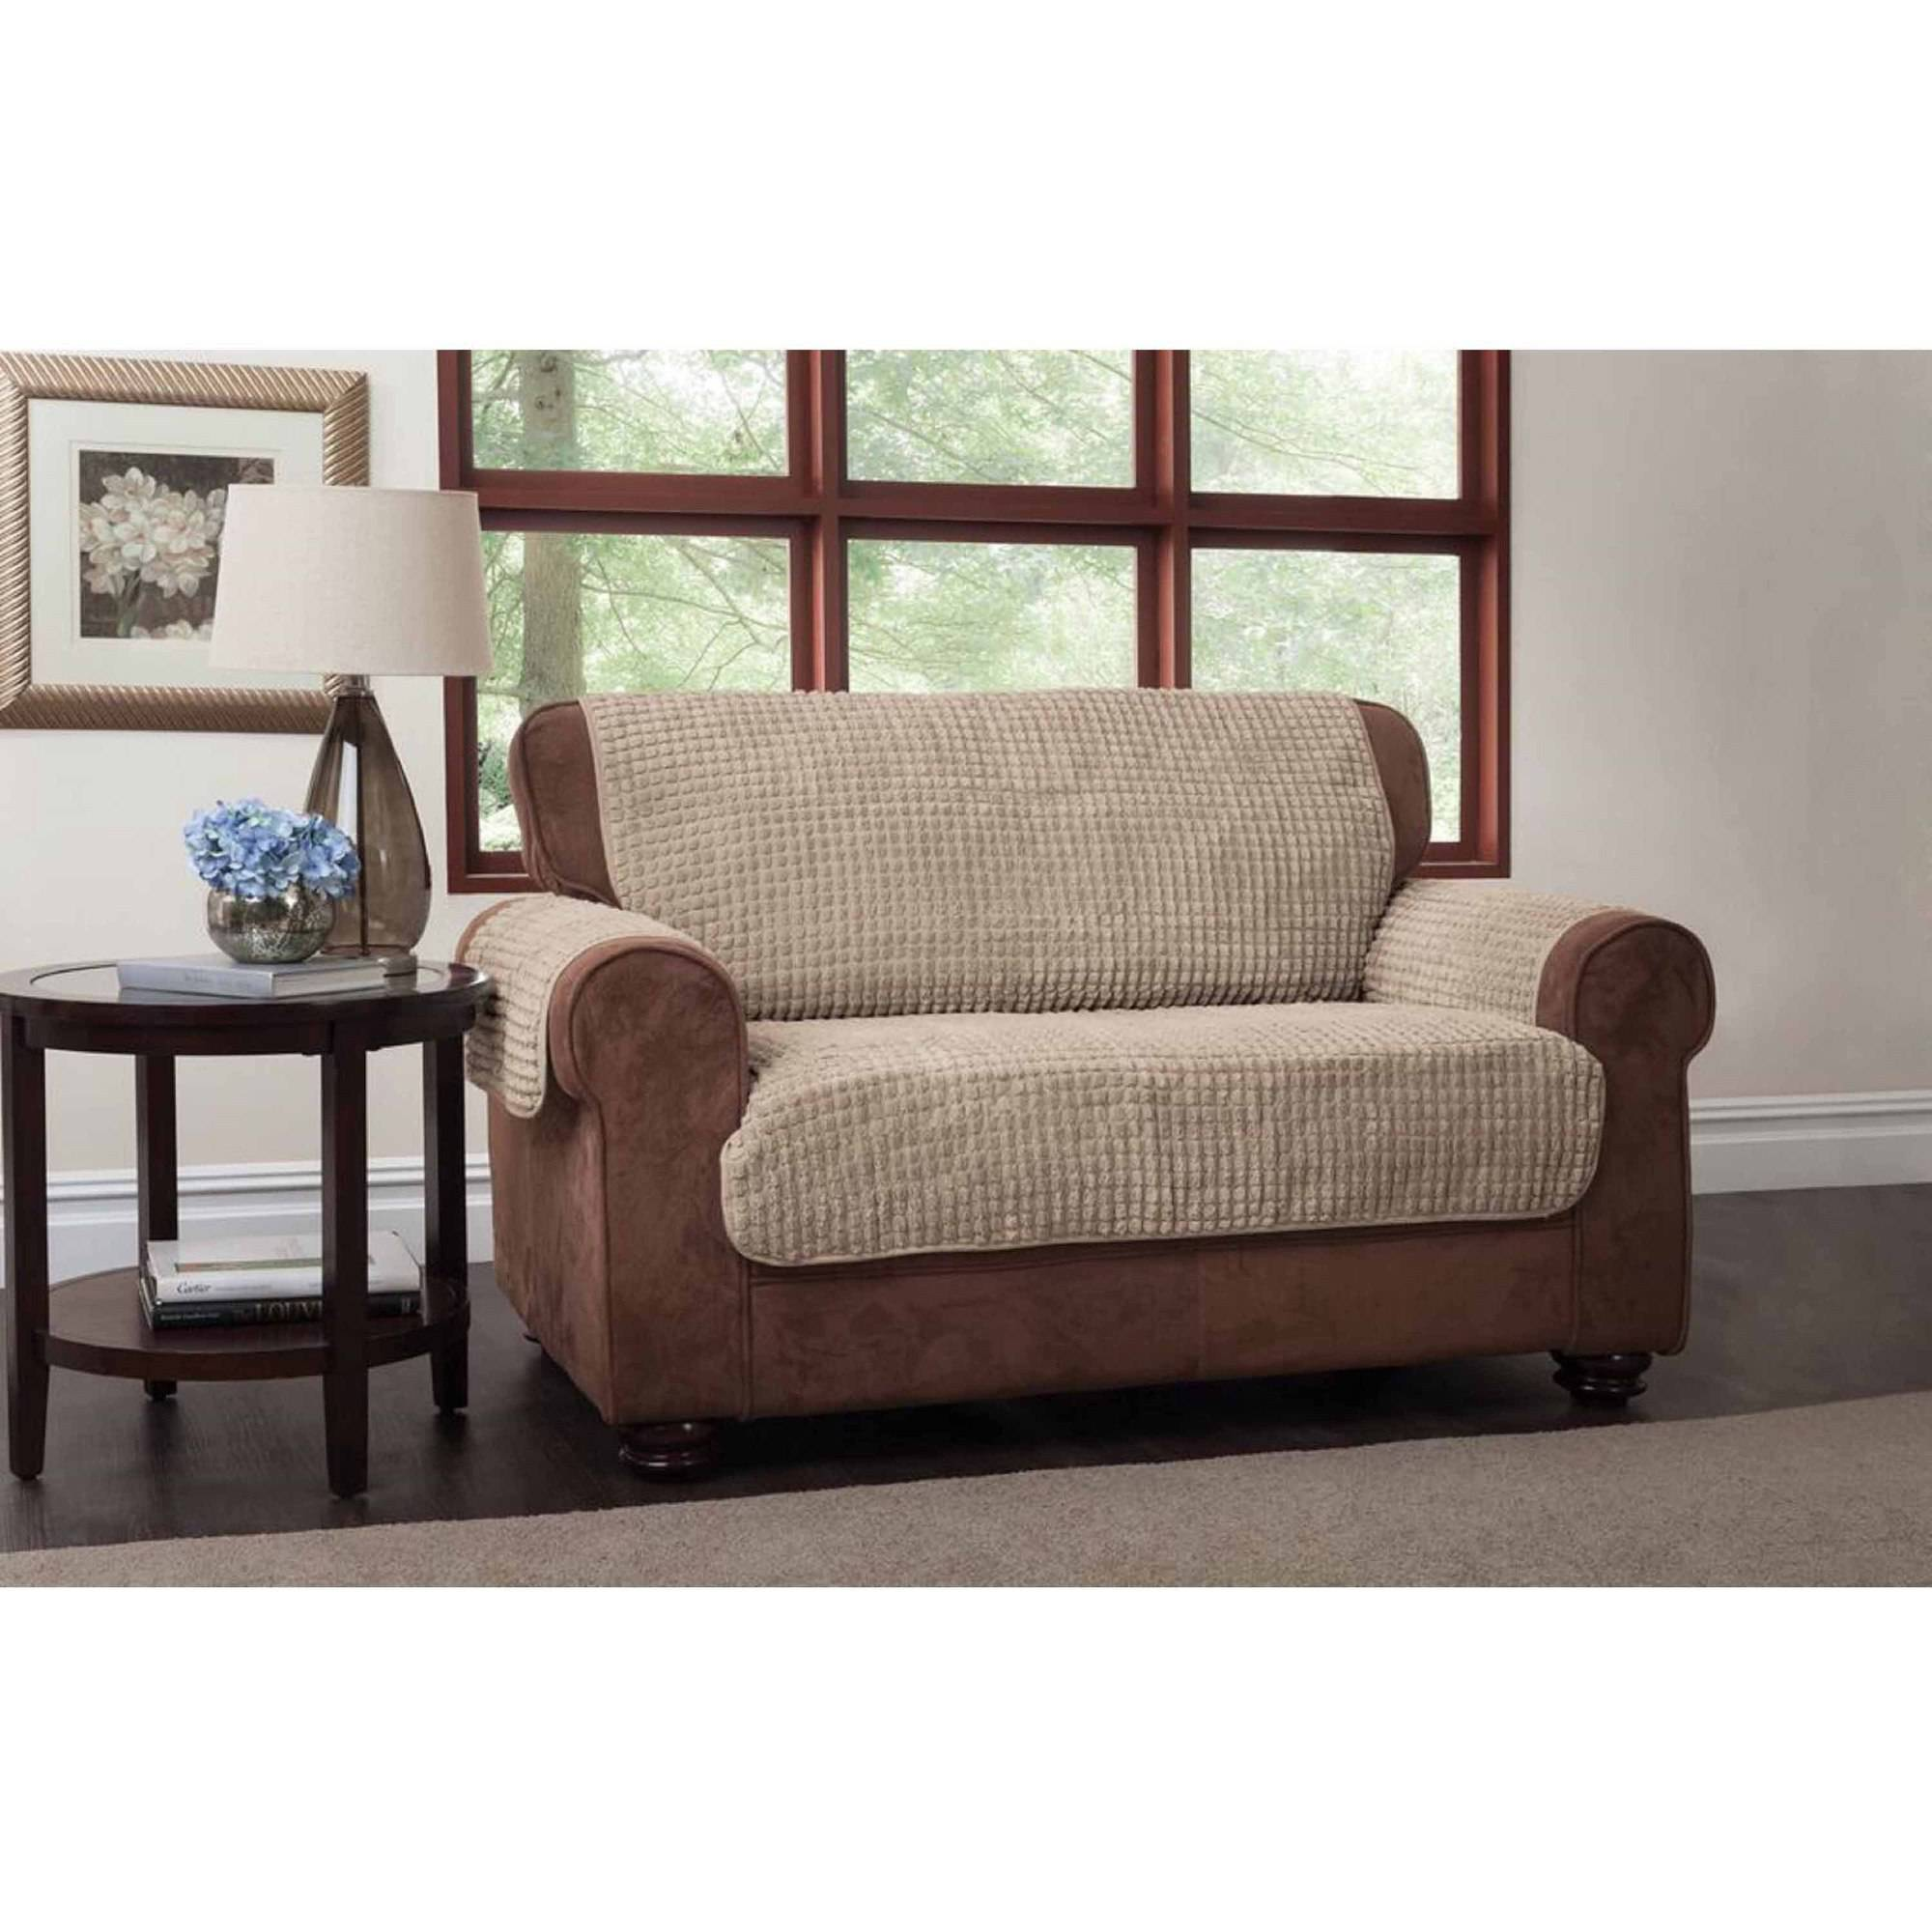 Innovative Textile Solutions Puff Sofa Protector